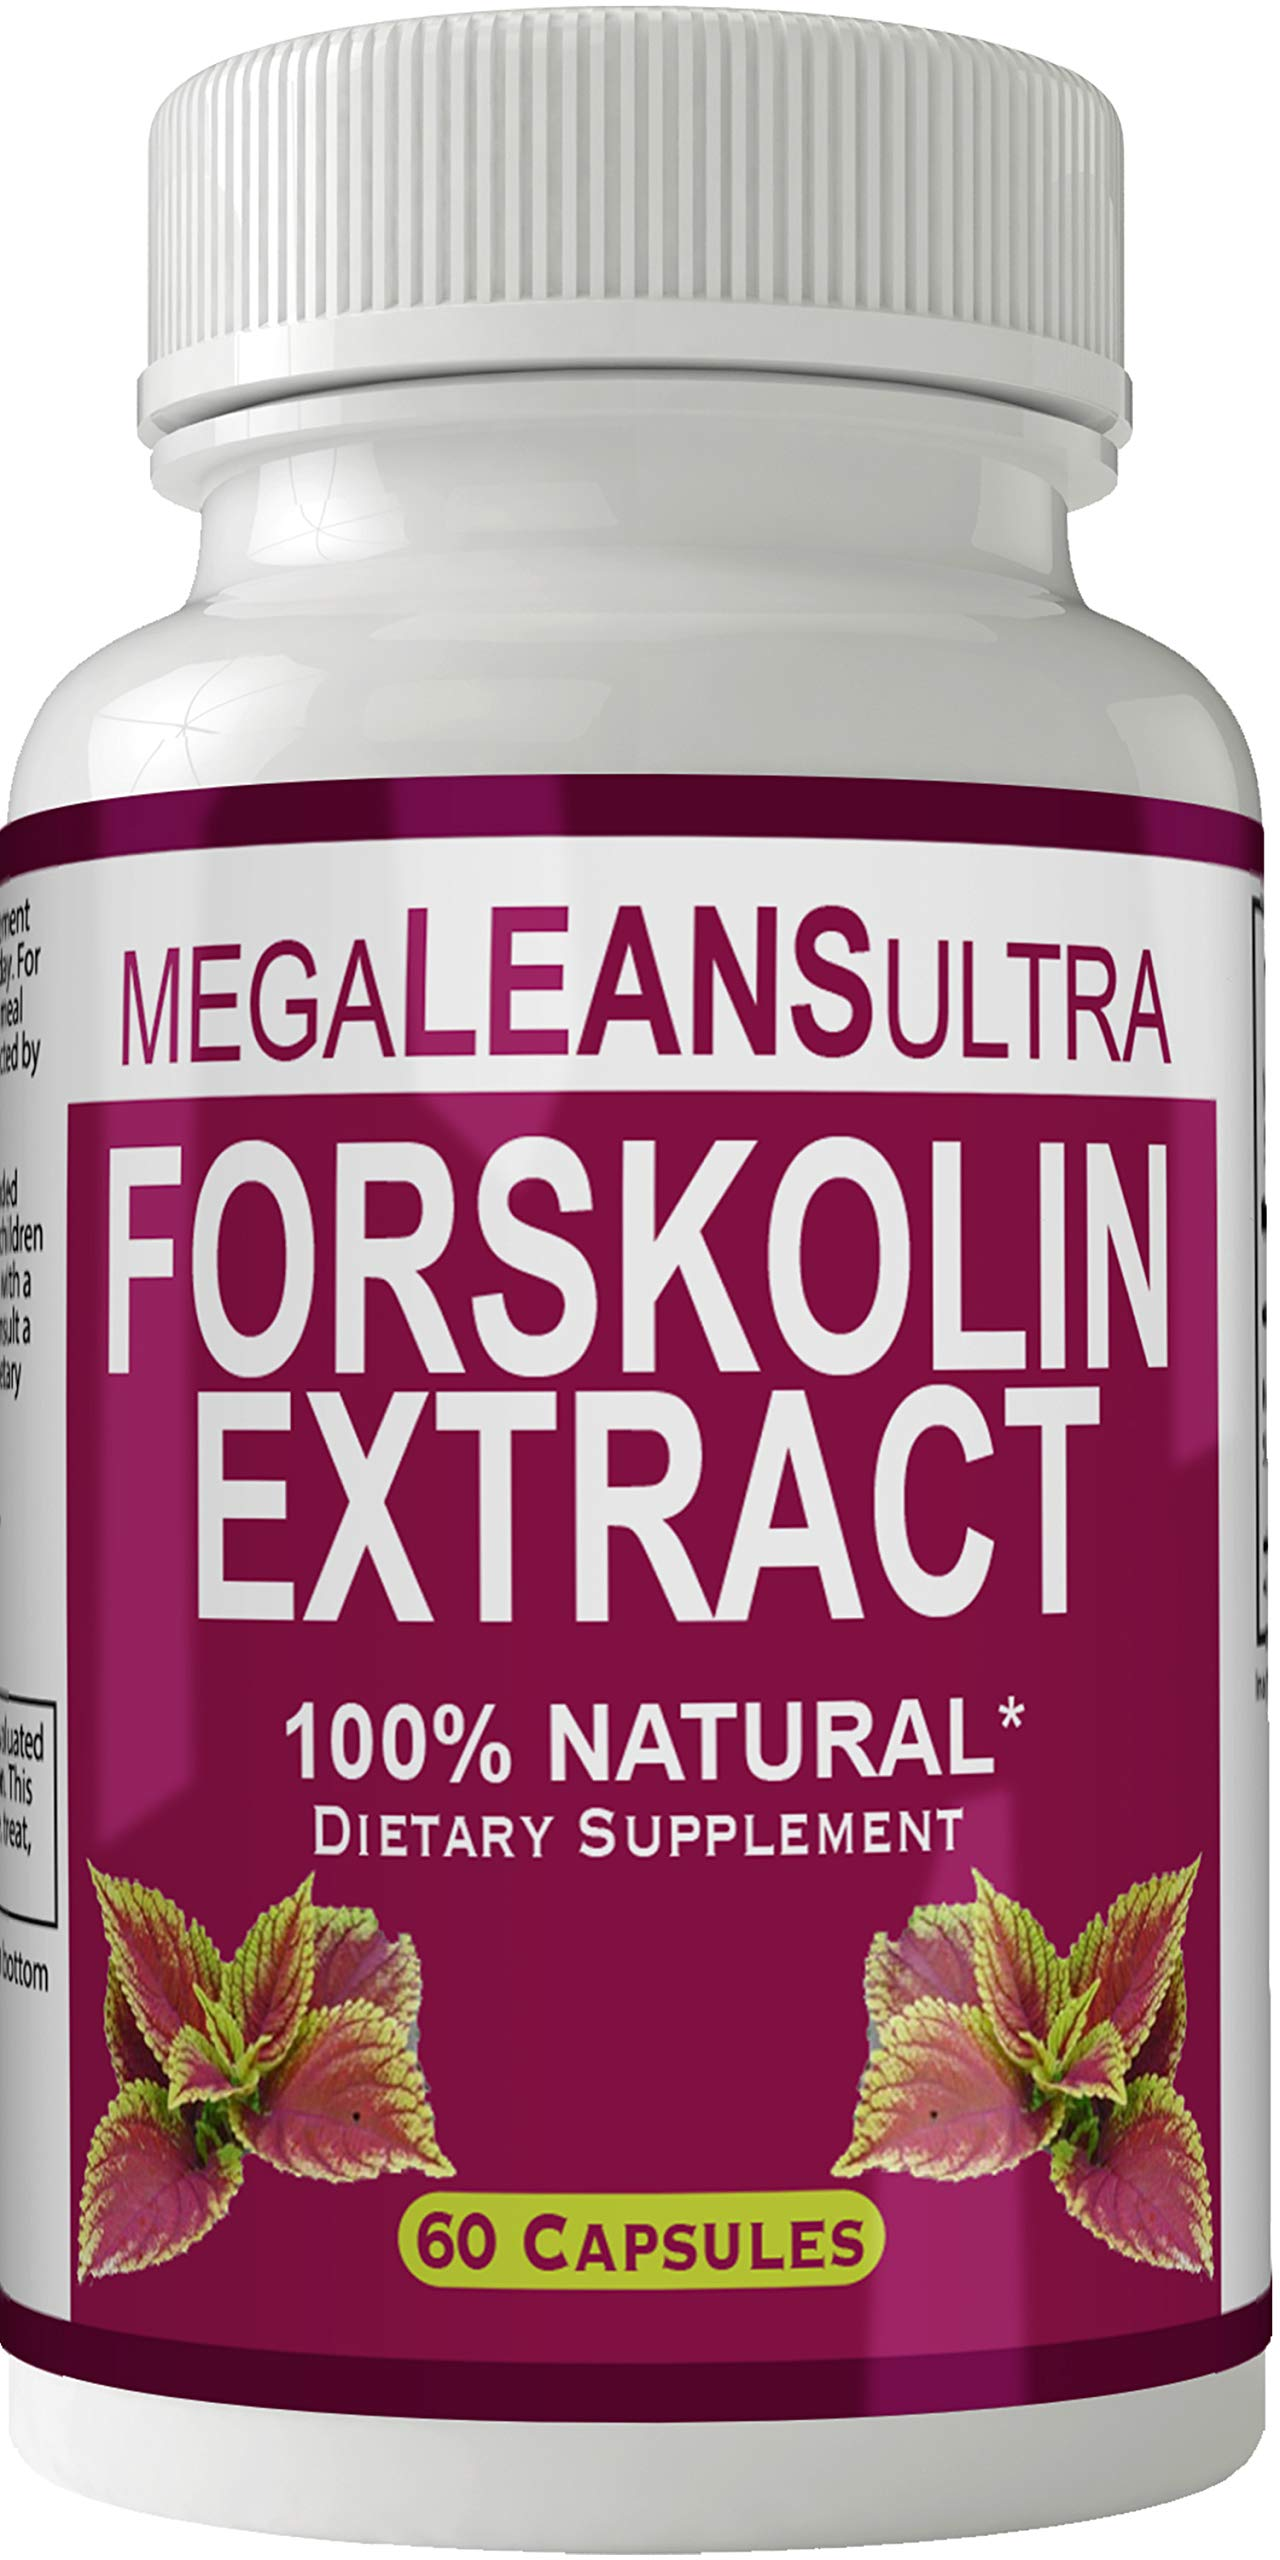 Megaleans Forskolin for Weight Loss Pills, Mega Leans Ultra Forskolin Extract Formula Tablets, High Quality Natural Megalean Diet Pill